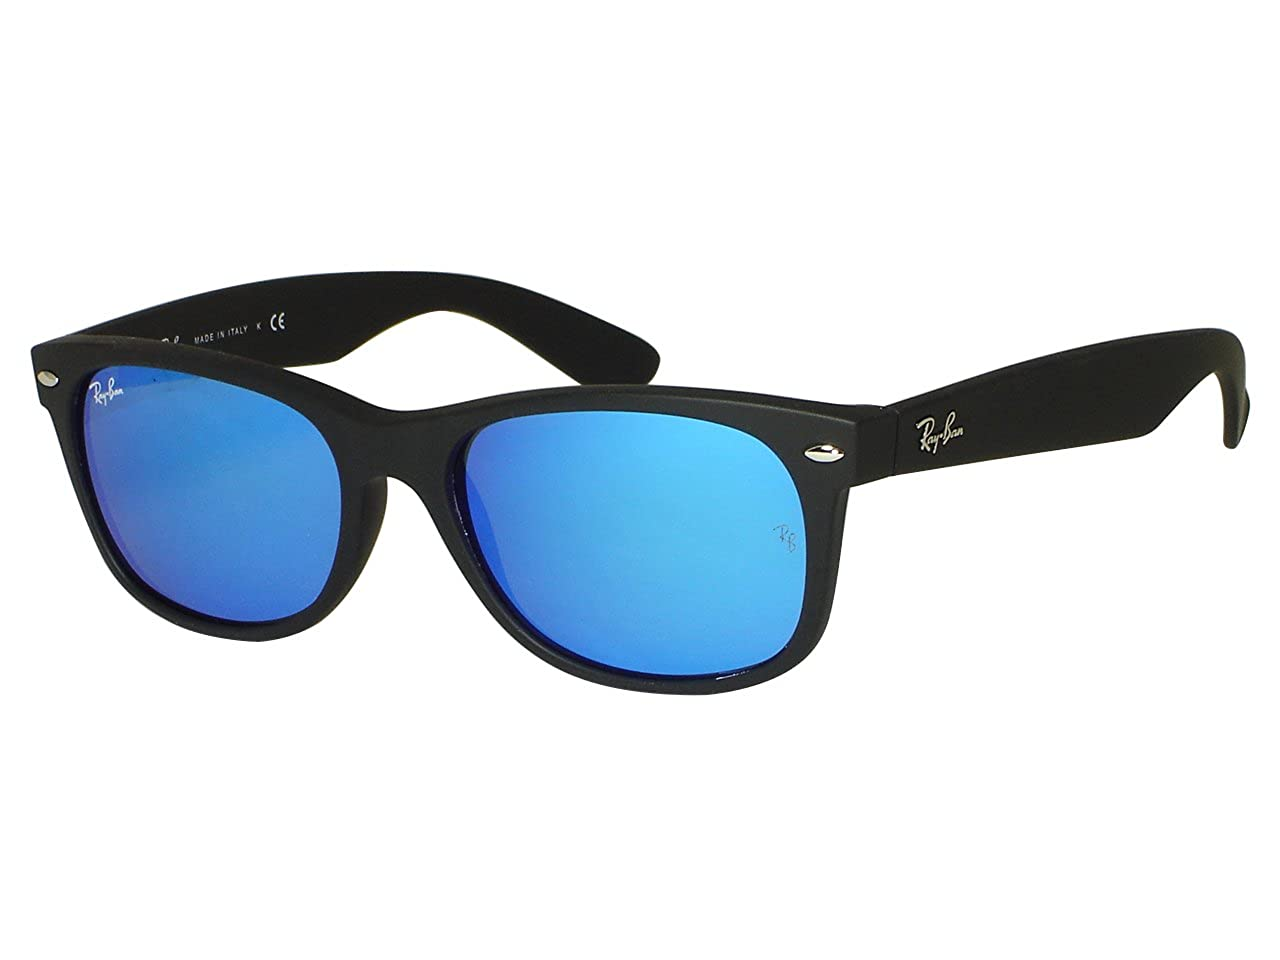 c6bddcc593 Amazon.com  Ray Ban RB2132 New Wayfarer 622 17 Blue Mirror sunglasses 55mm   Clothing